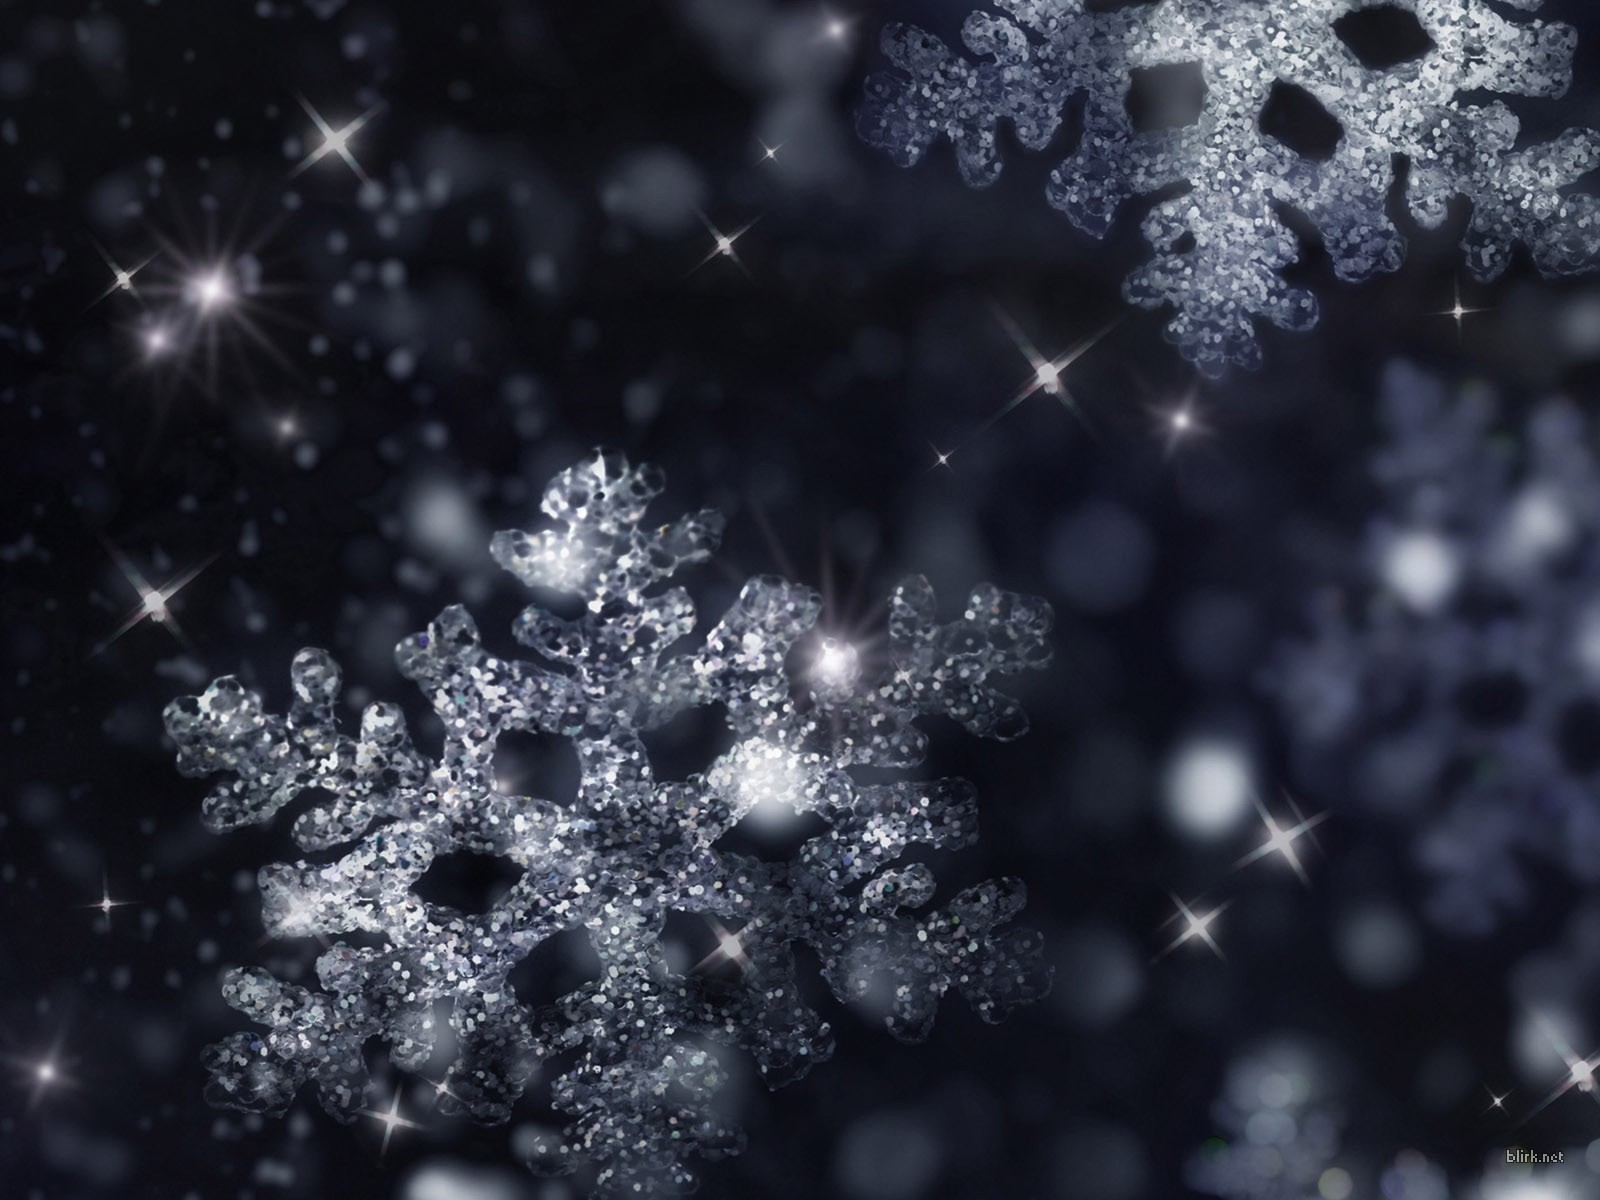 Snow Falling Wallpaper Hd: Wallpapers for Gt Real Snowflakes Falling Wallpaper 1600x1200px